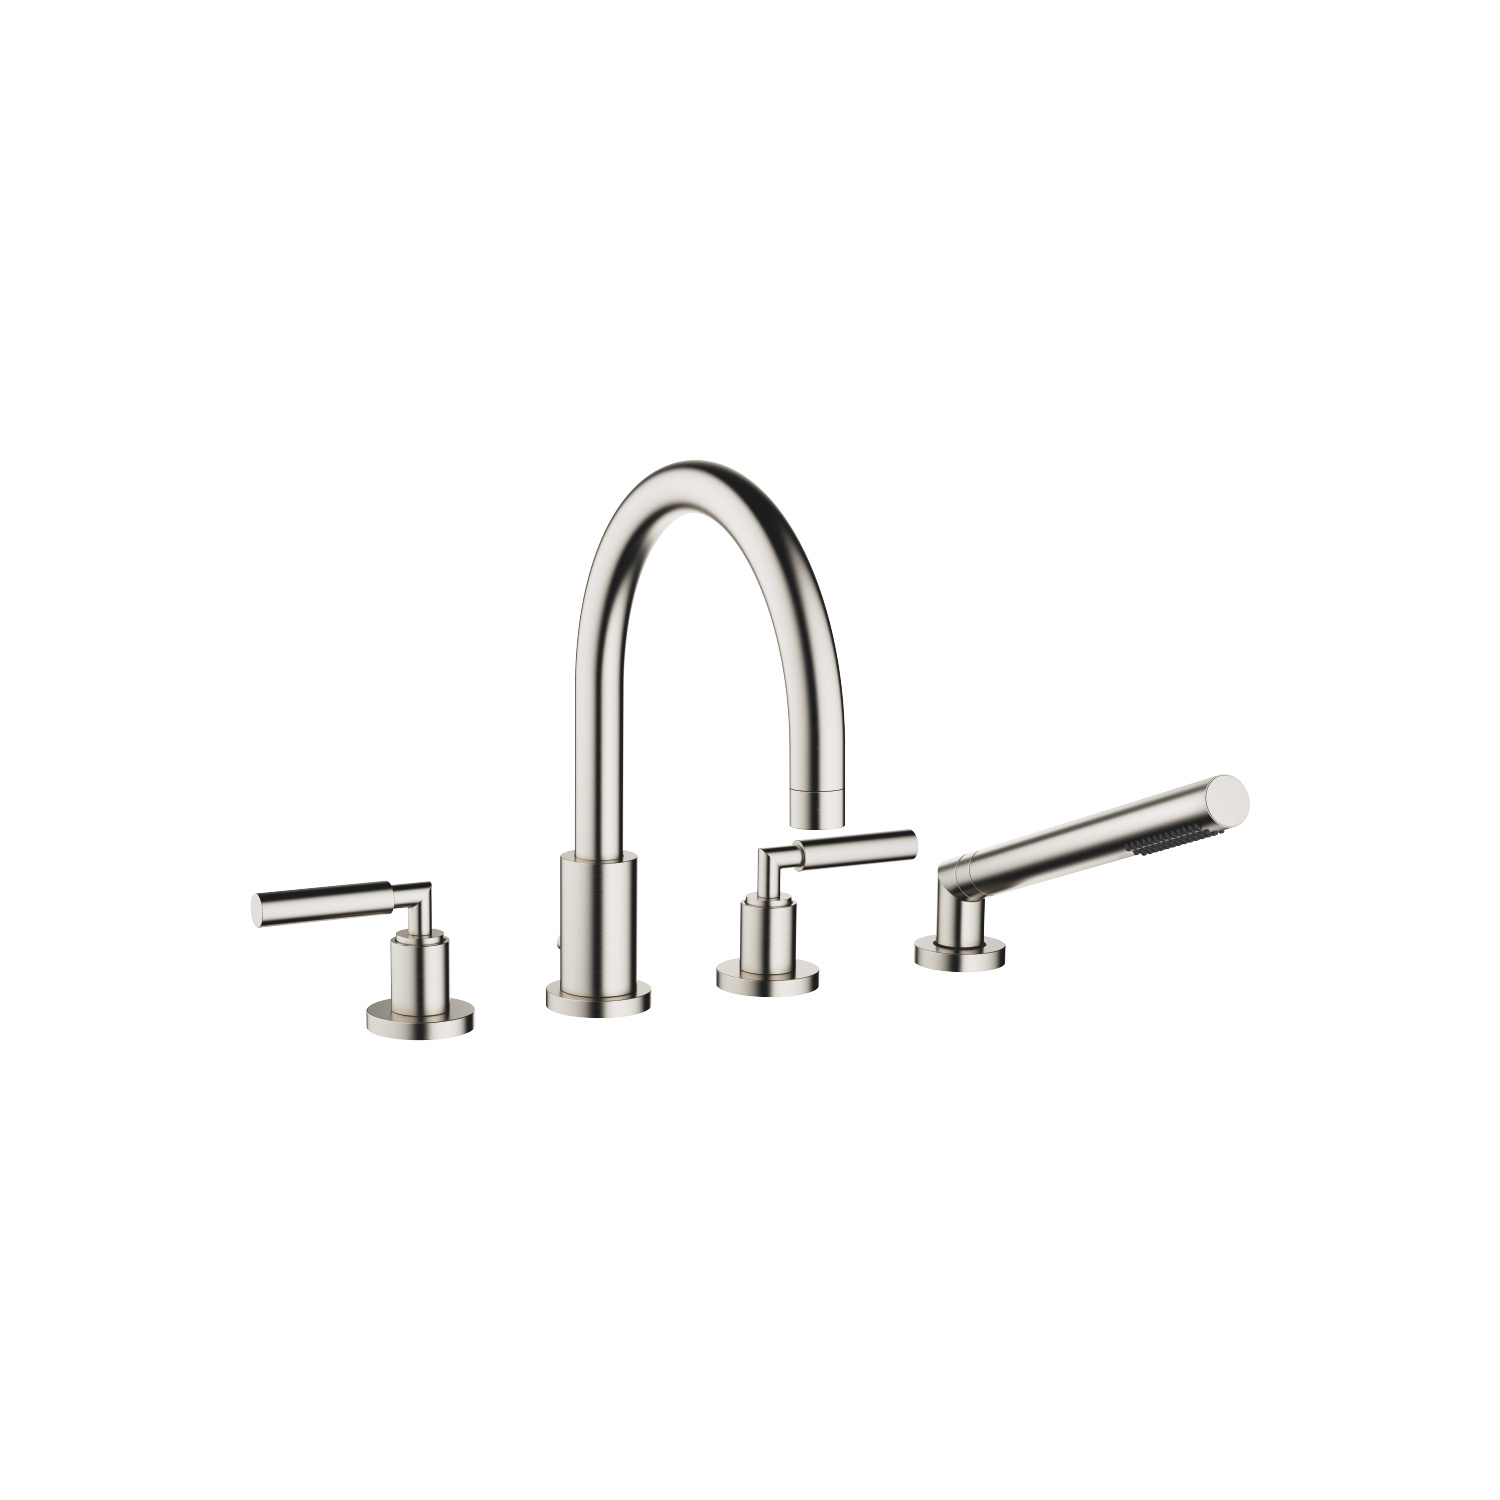 Deck-mounted tub mixer, with hand shower set for deck-mounted tub installation - platinum matte